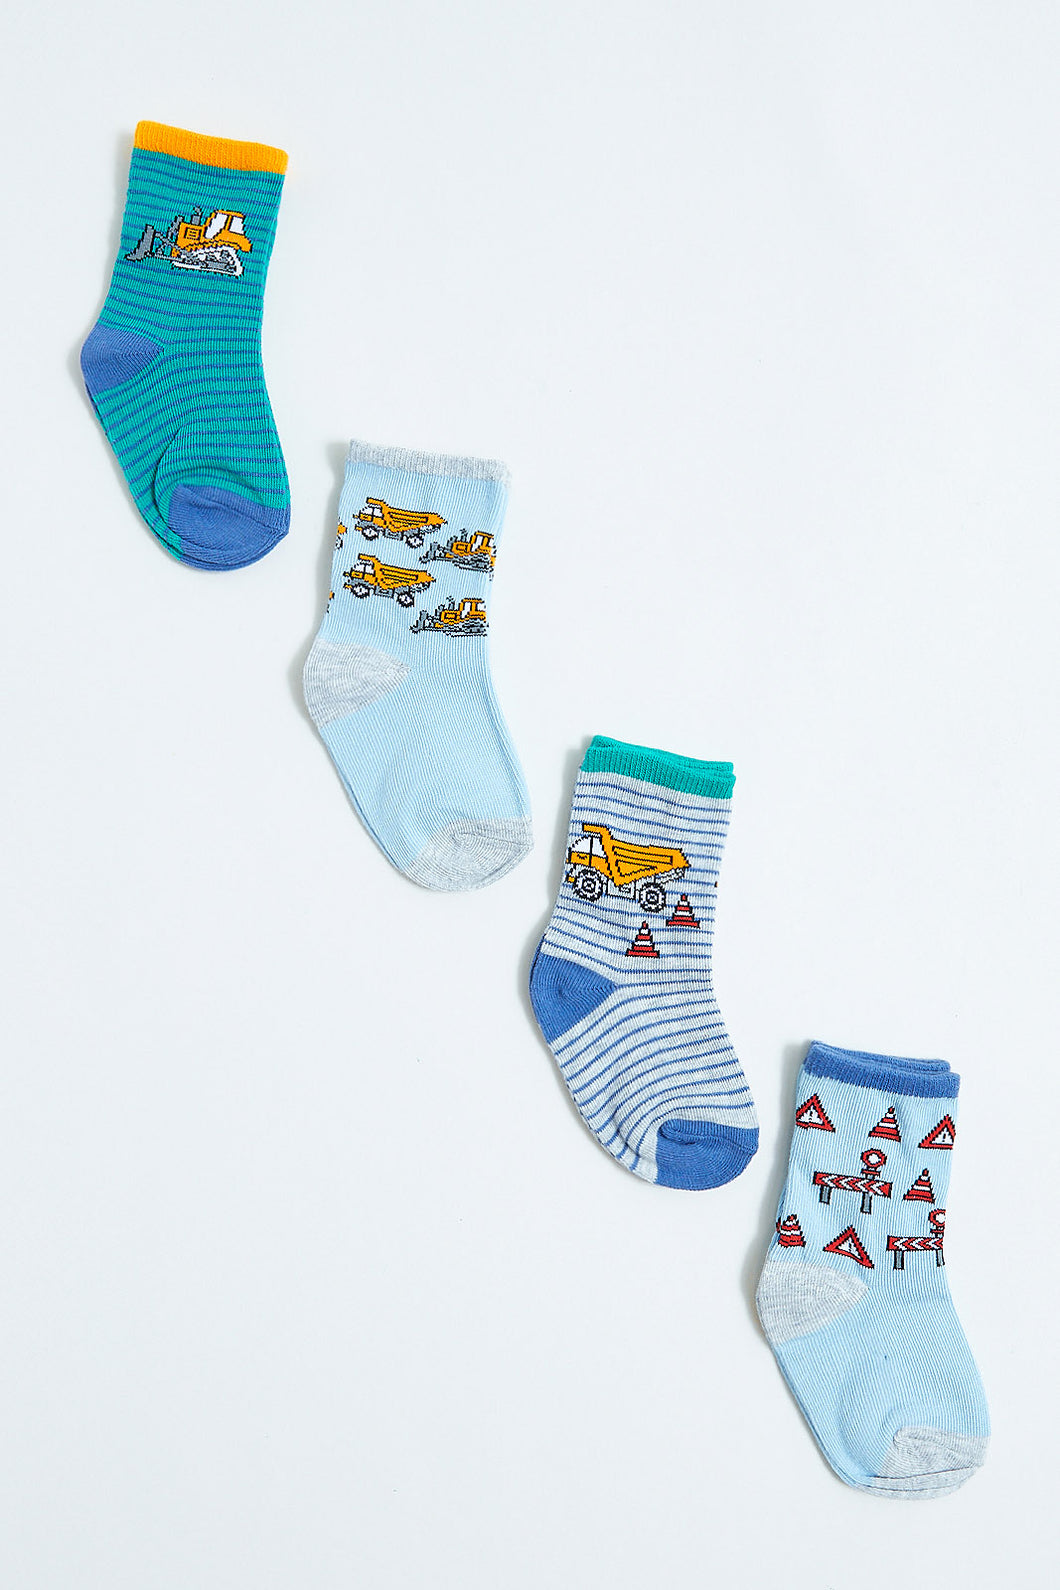 Assorted Ankle Length Socks (4 Piece Set)